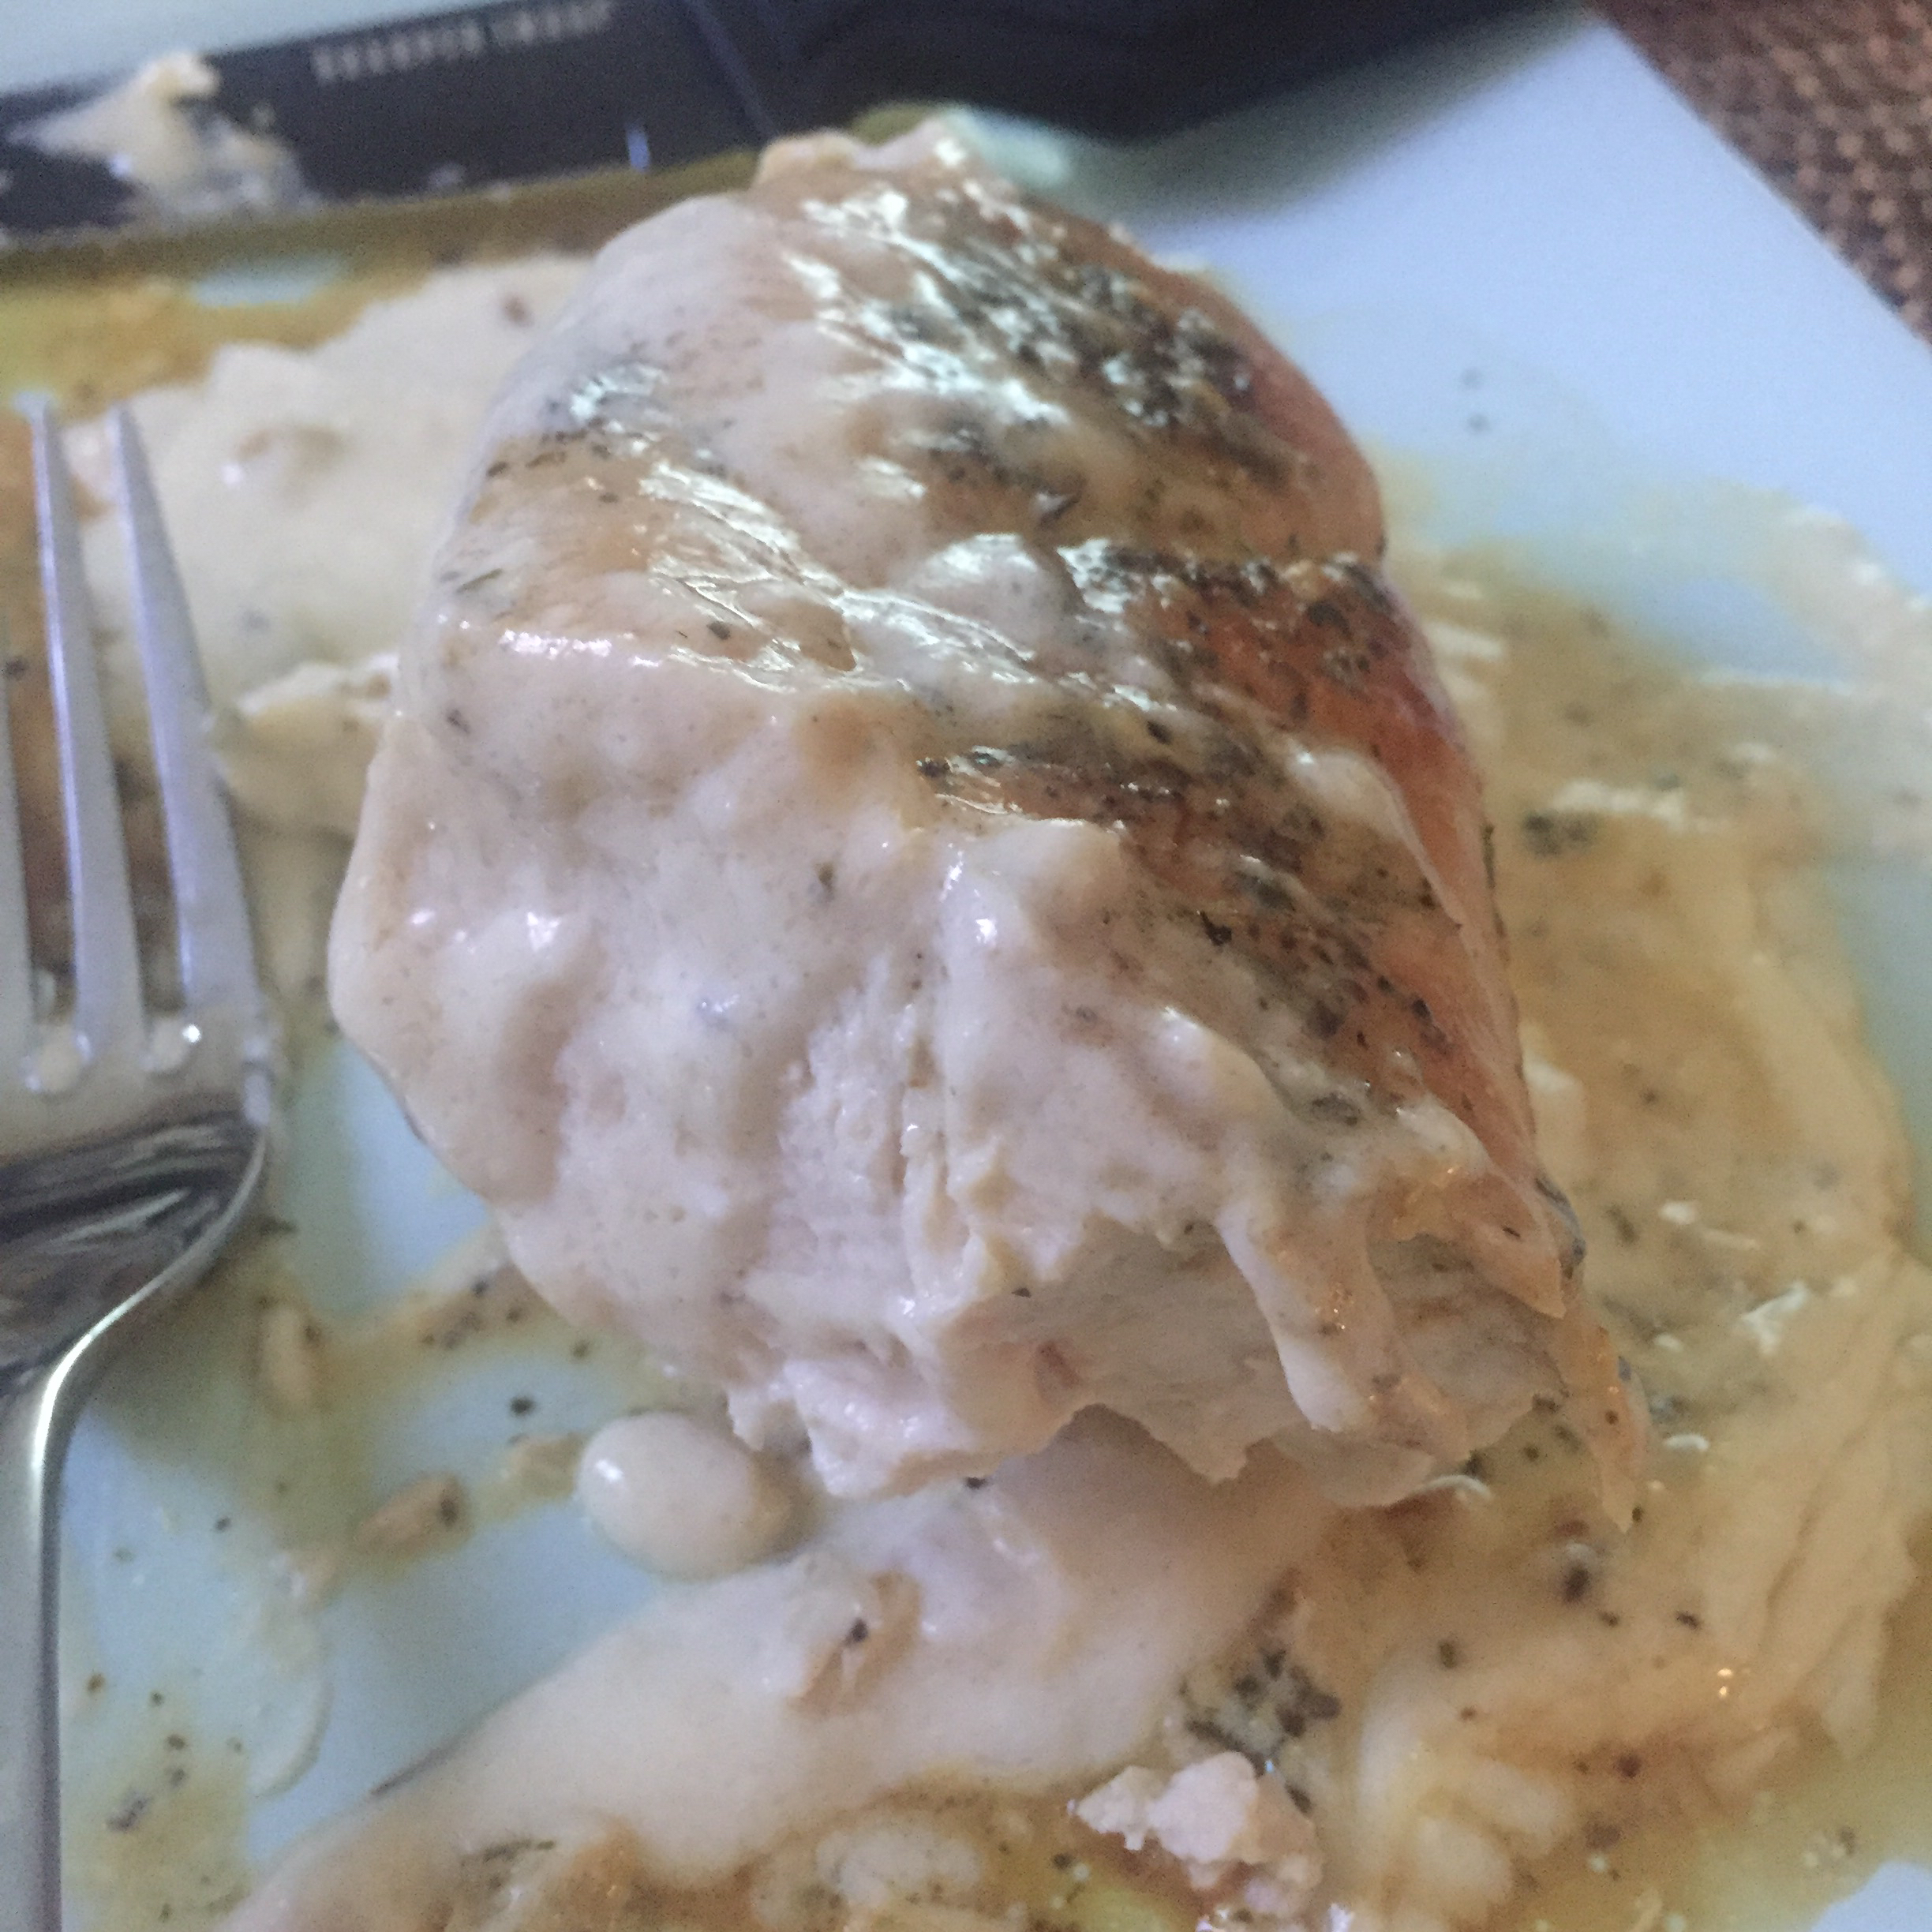 Garlic Cream Sauce over Chicken Breasts Taylor L